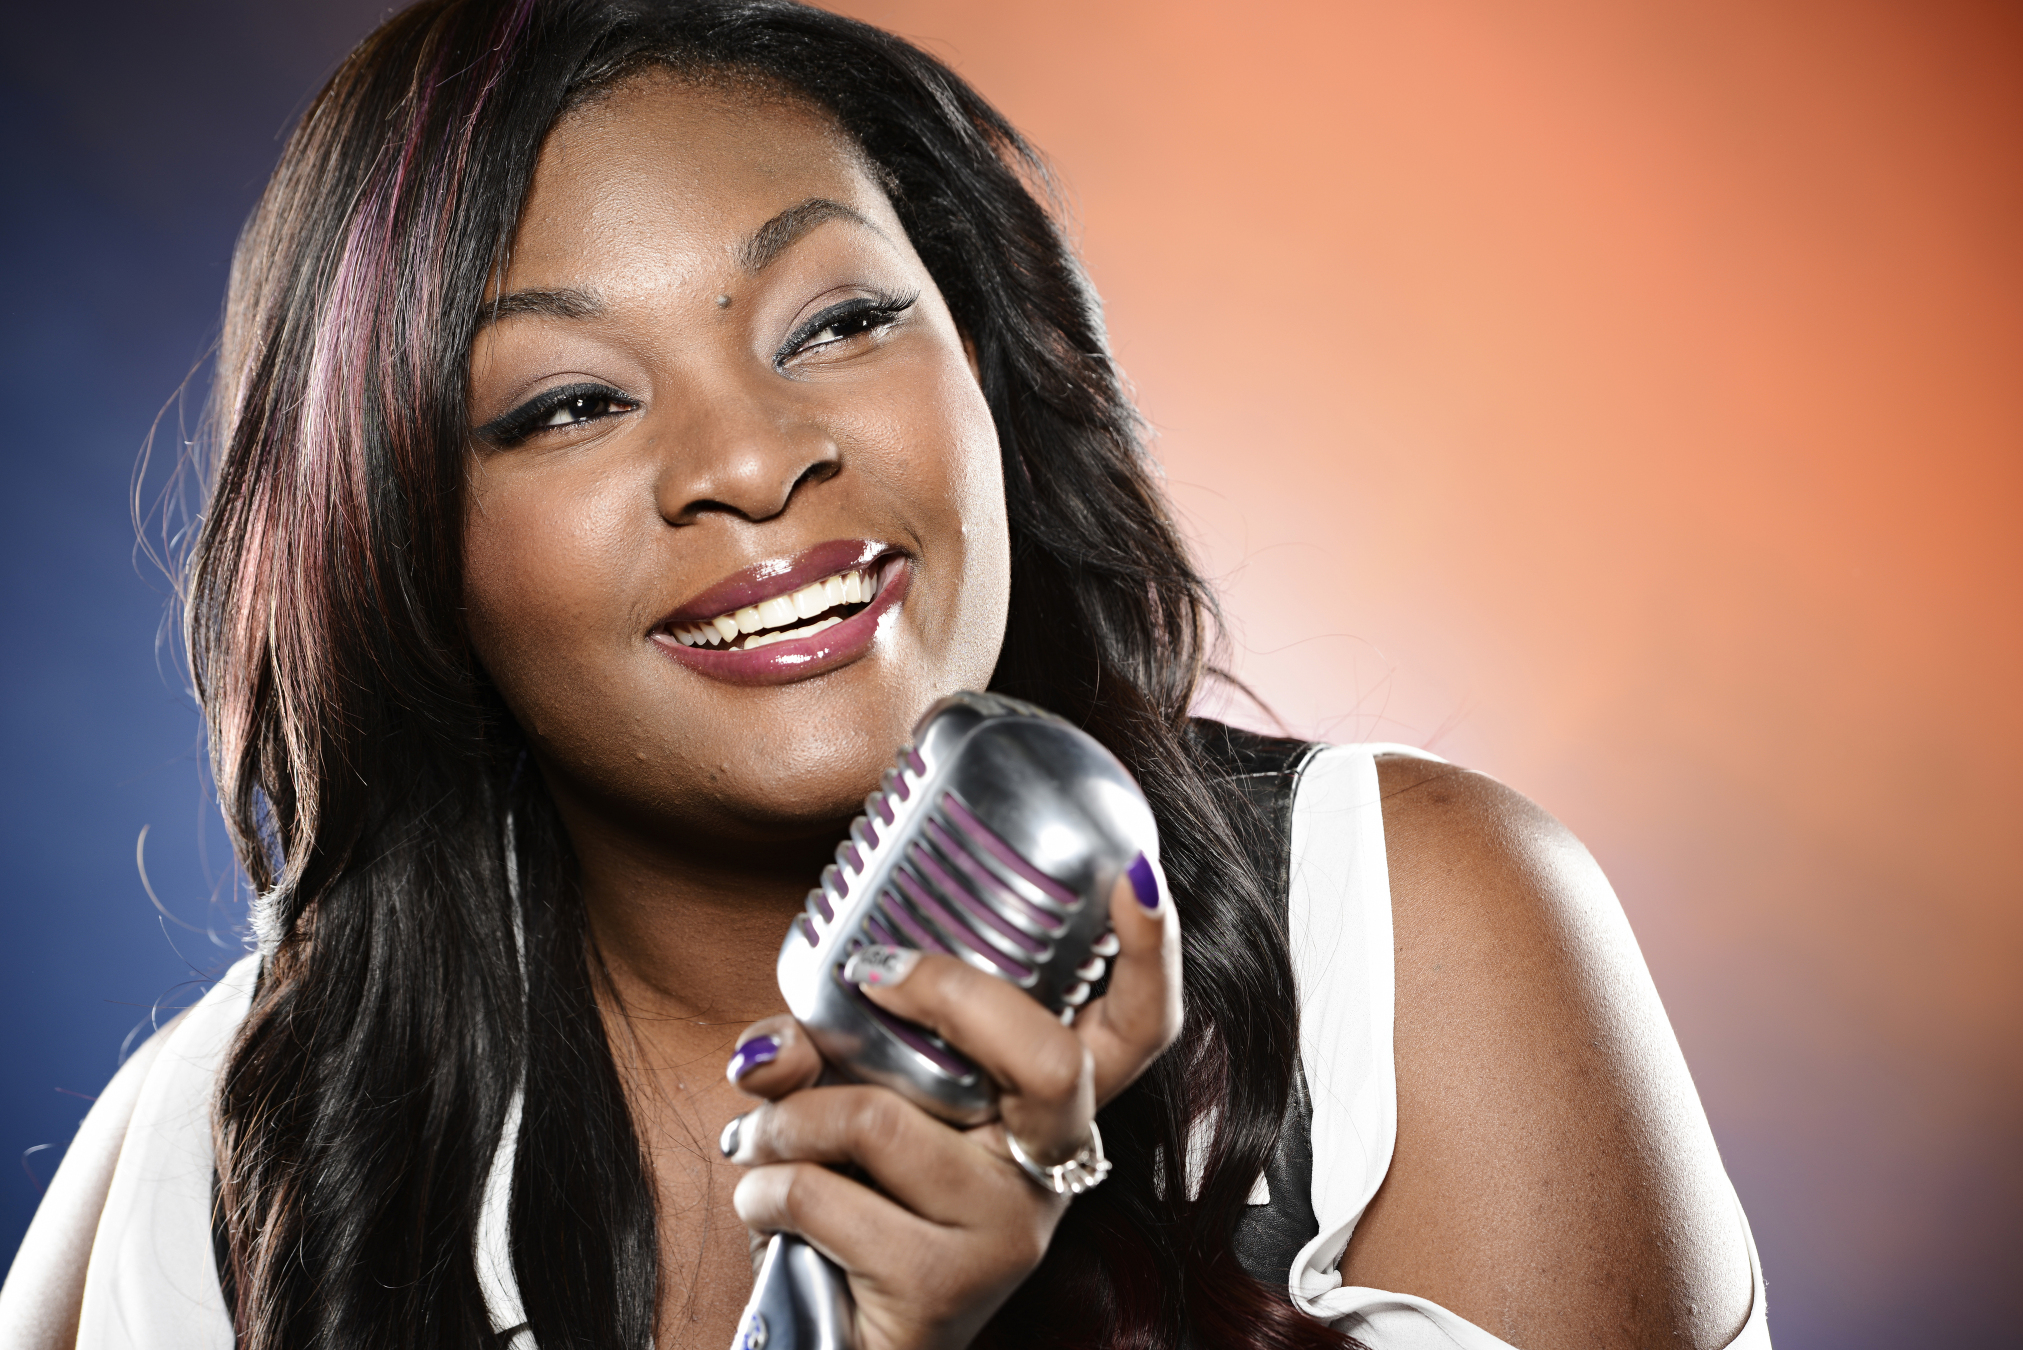 American Idol Season 12 winner, Candice Glover.